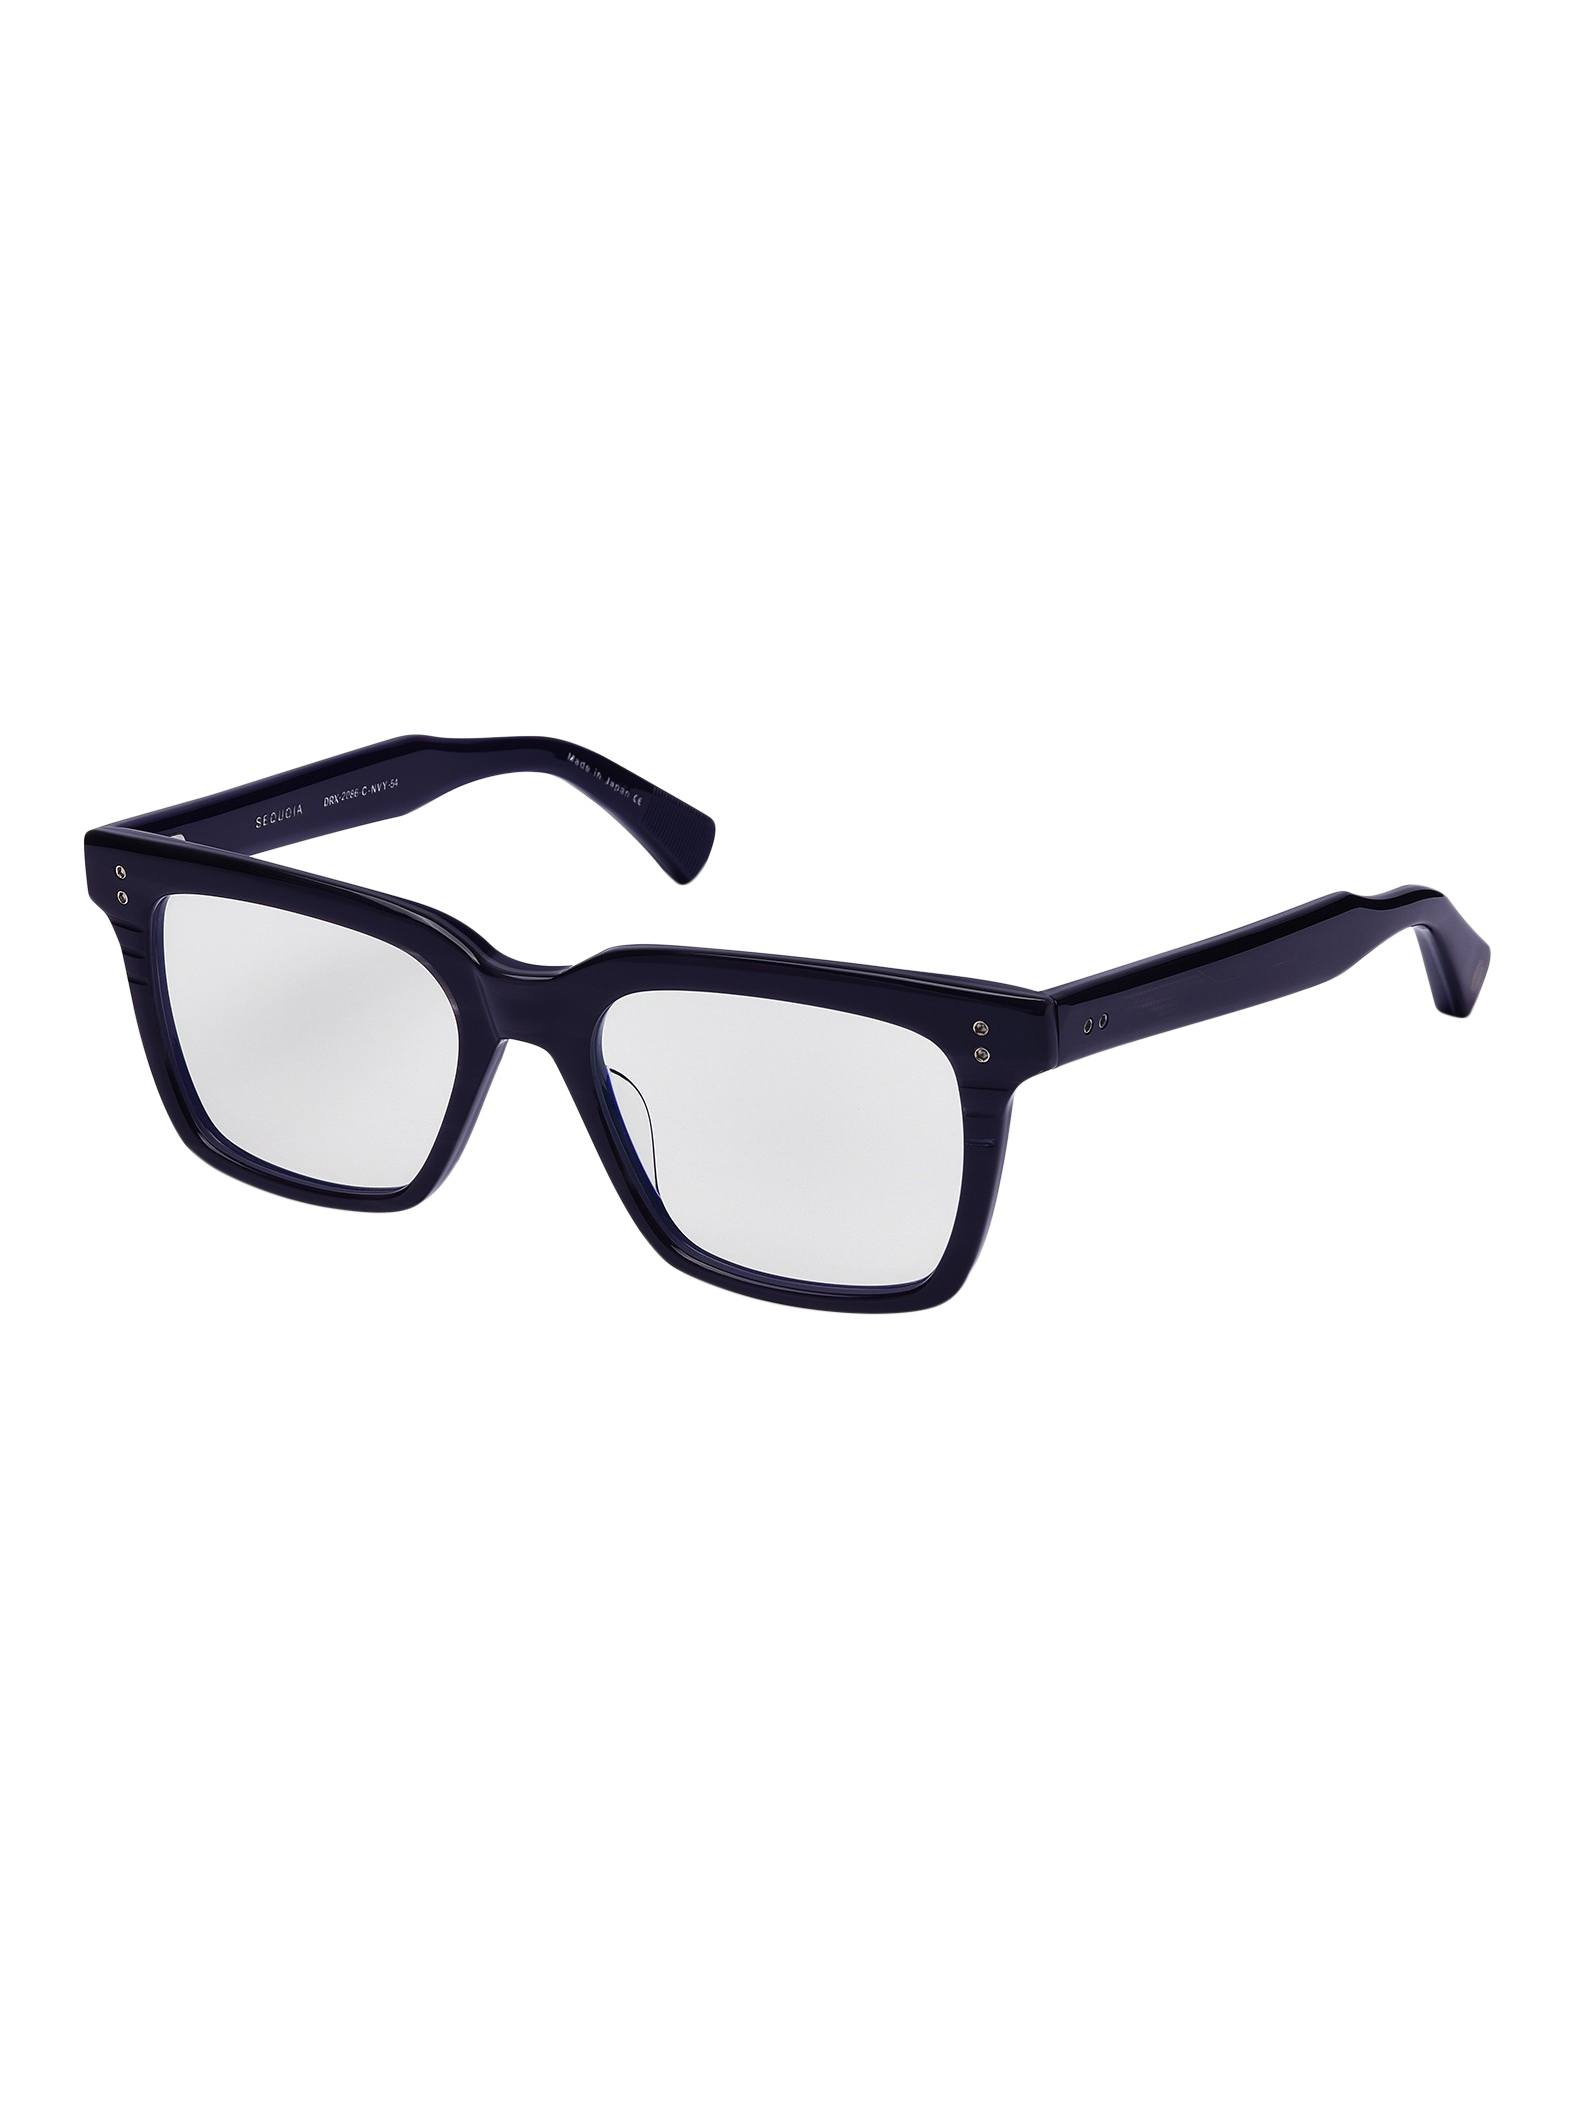 Optical Frame - Dita Sequoia DRX-2086C In Navy Glasses